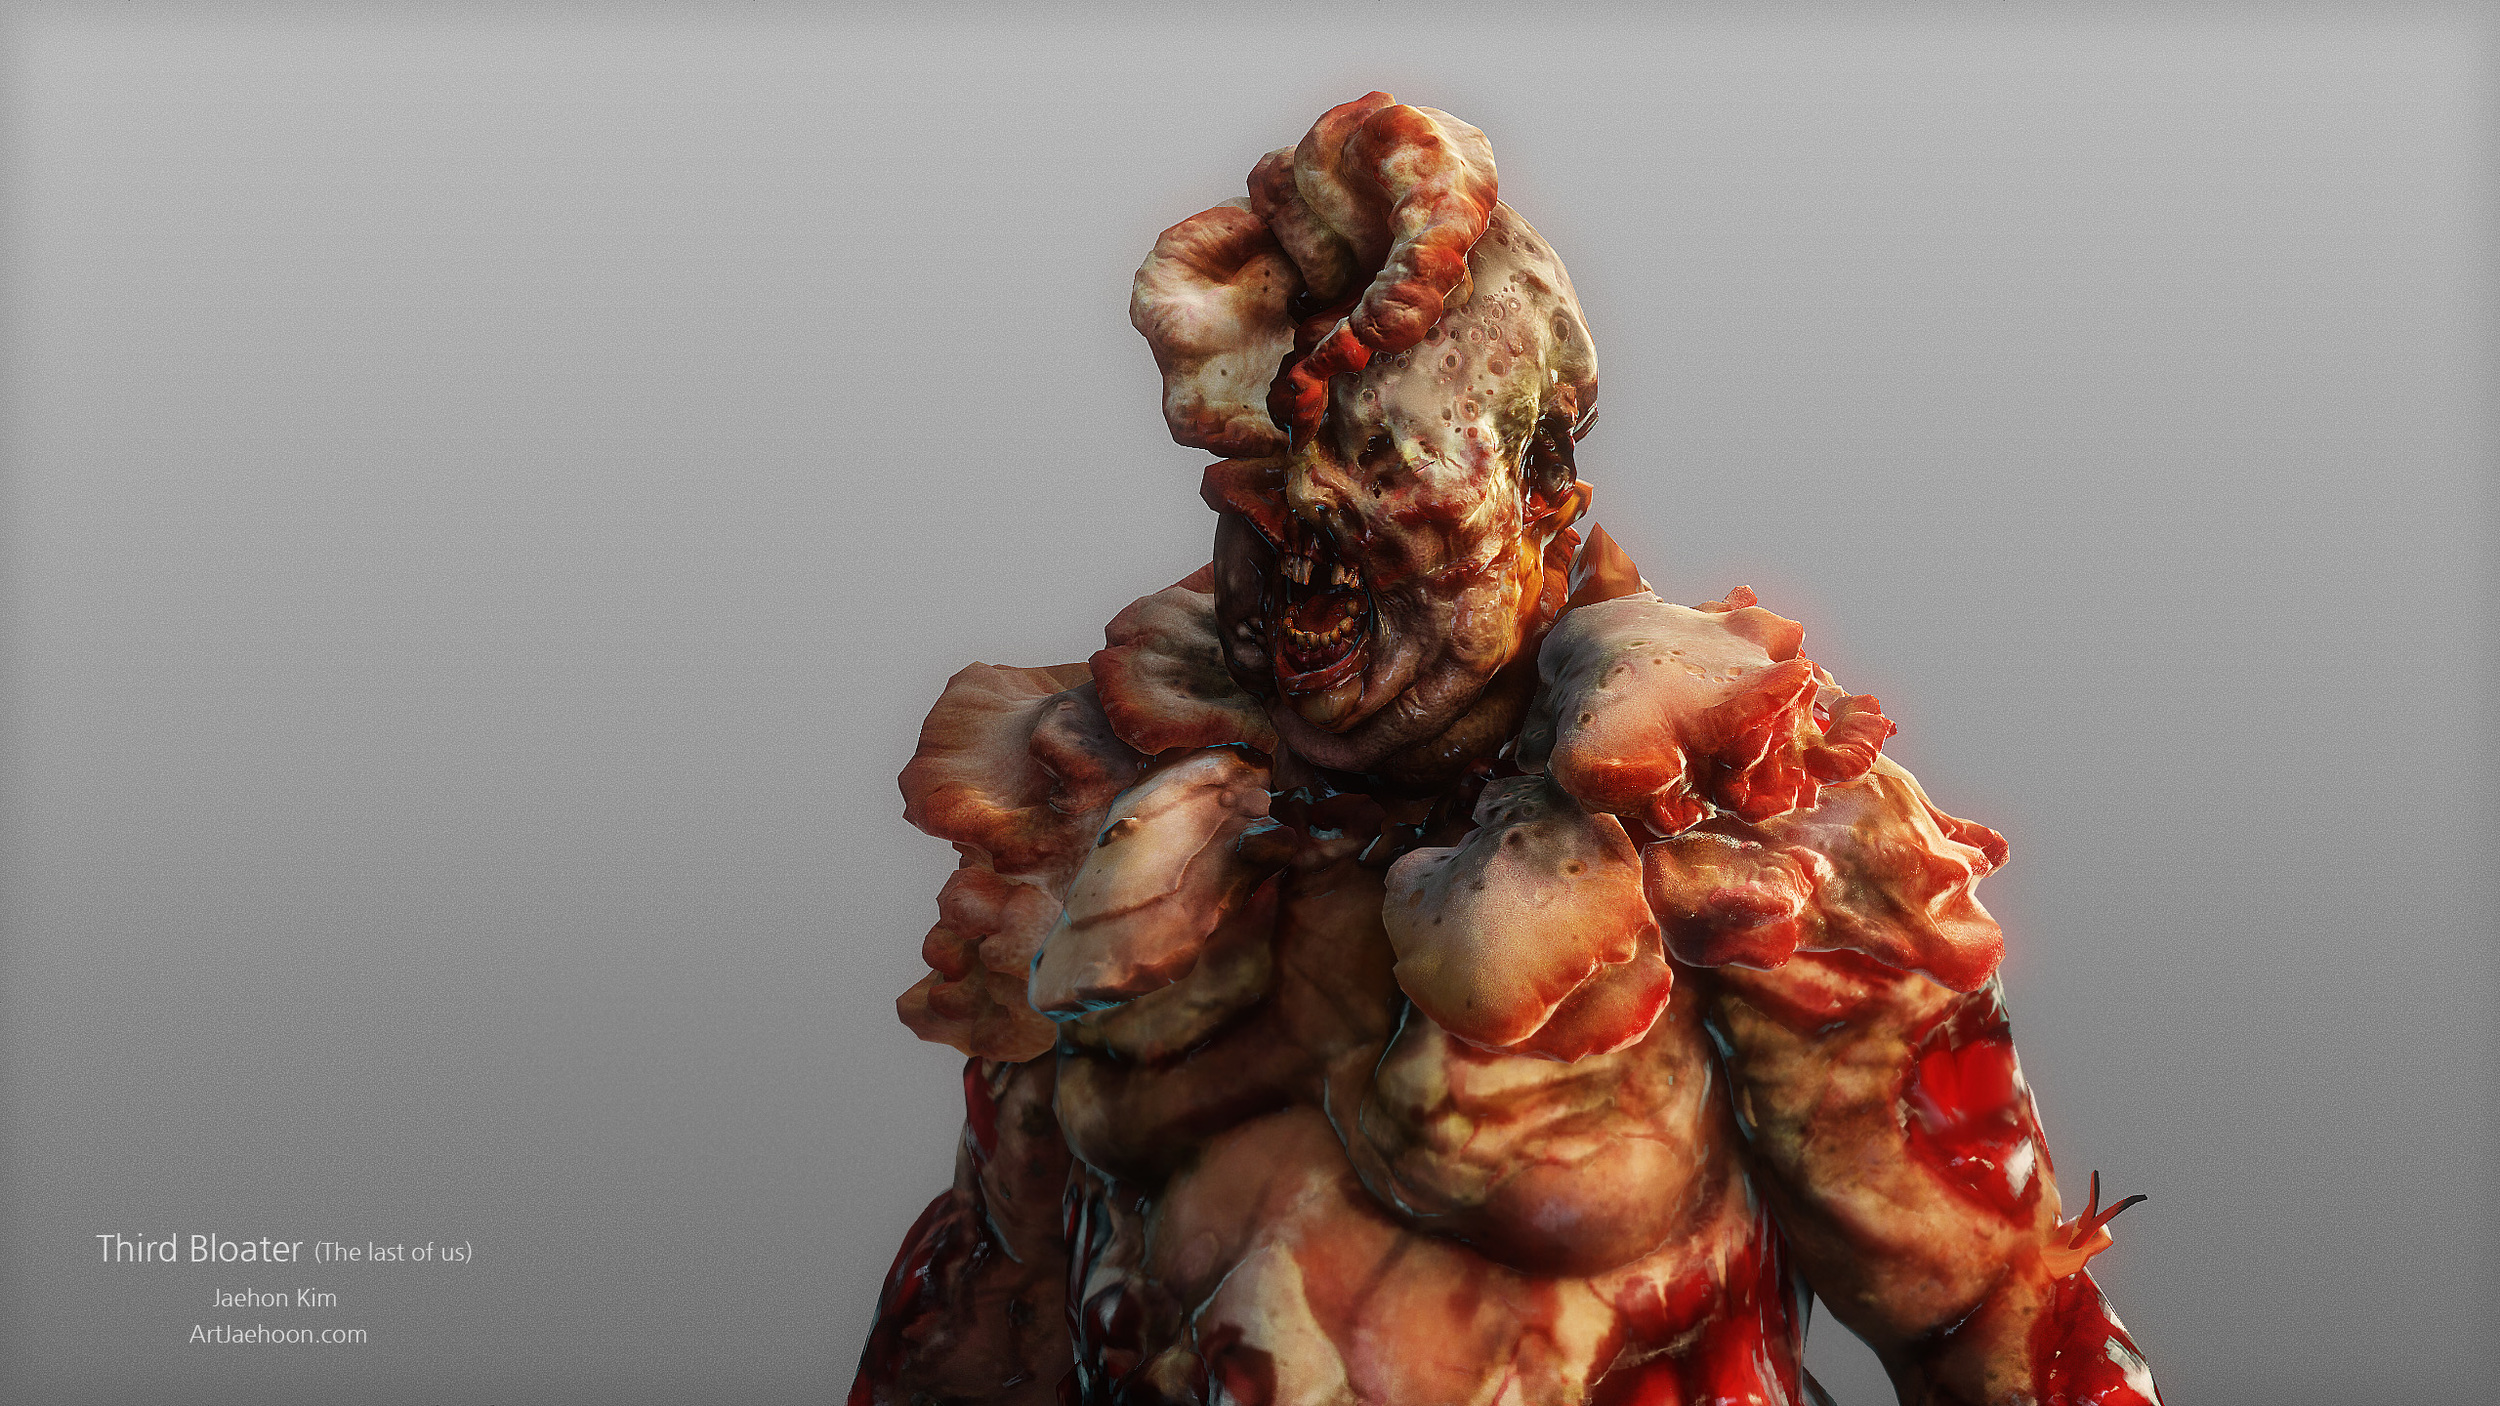 This is one of bloater variation. The base model is from Michael Knowland and I created upper torso include the head.